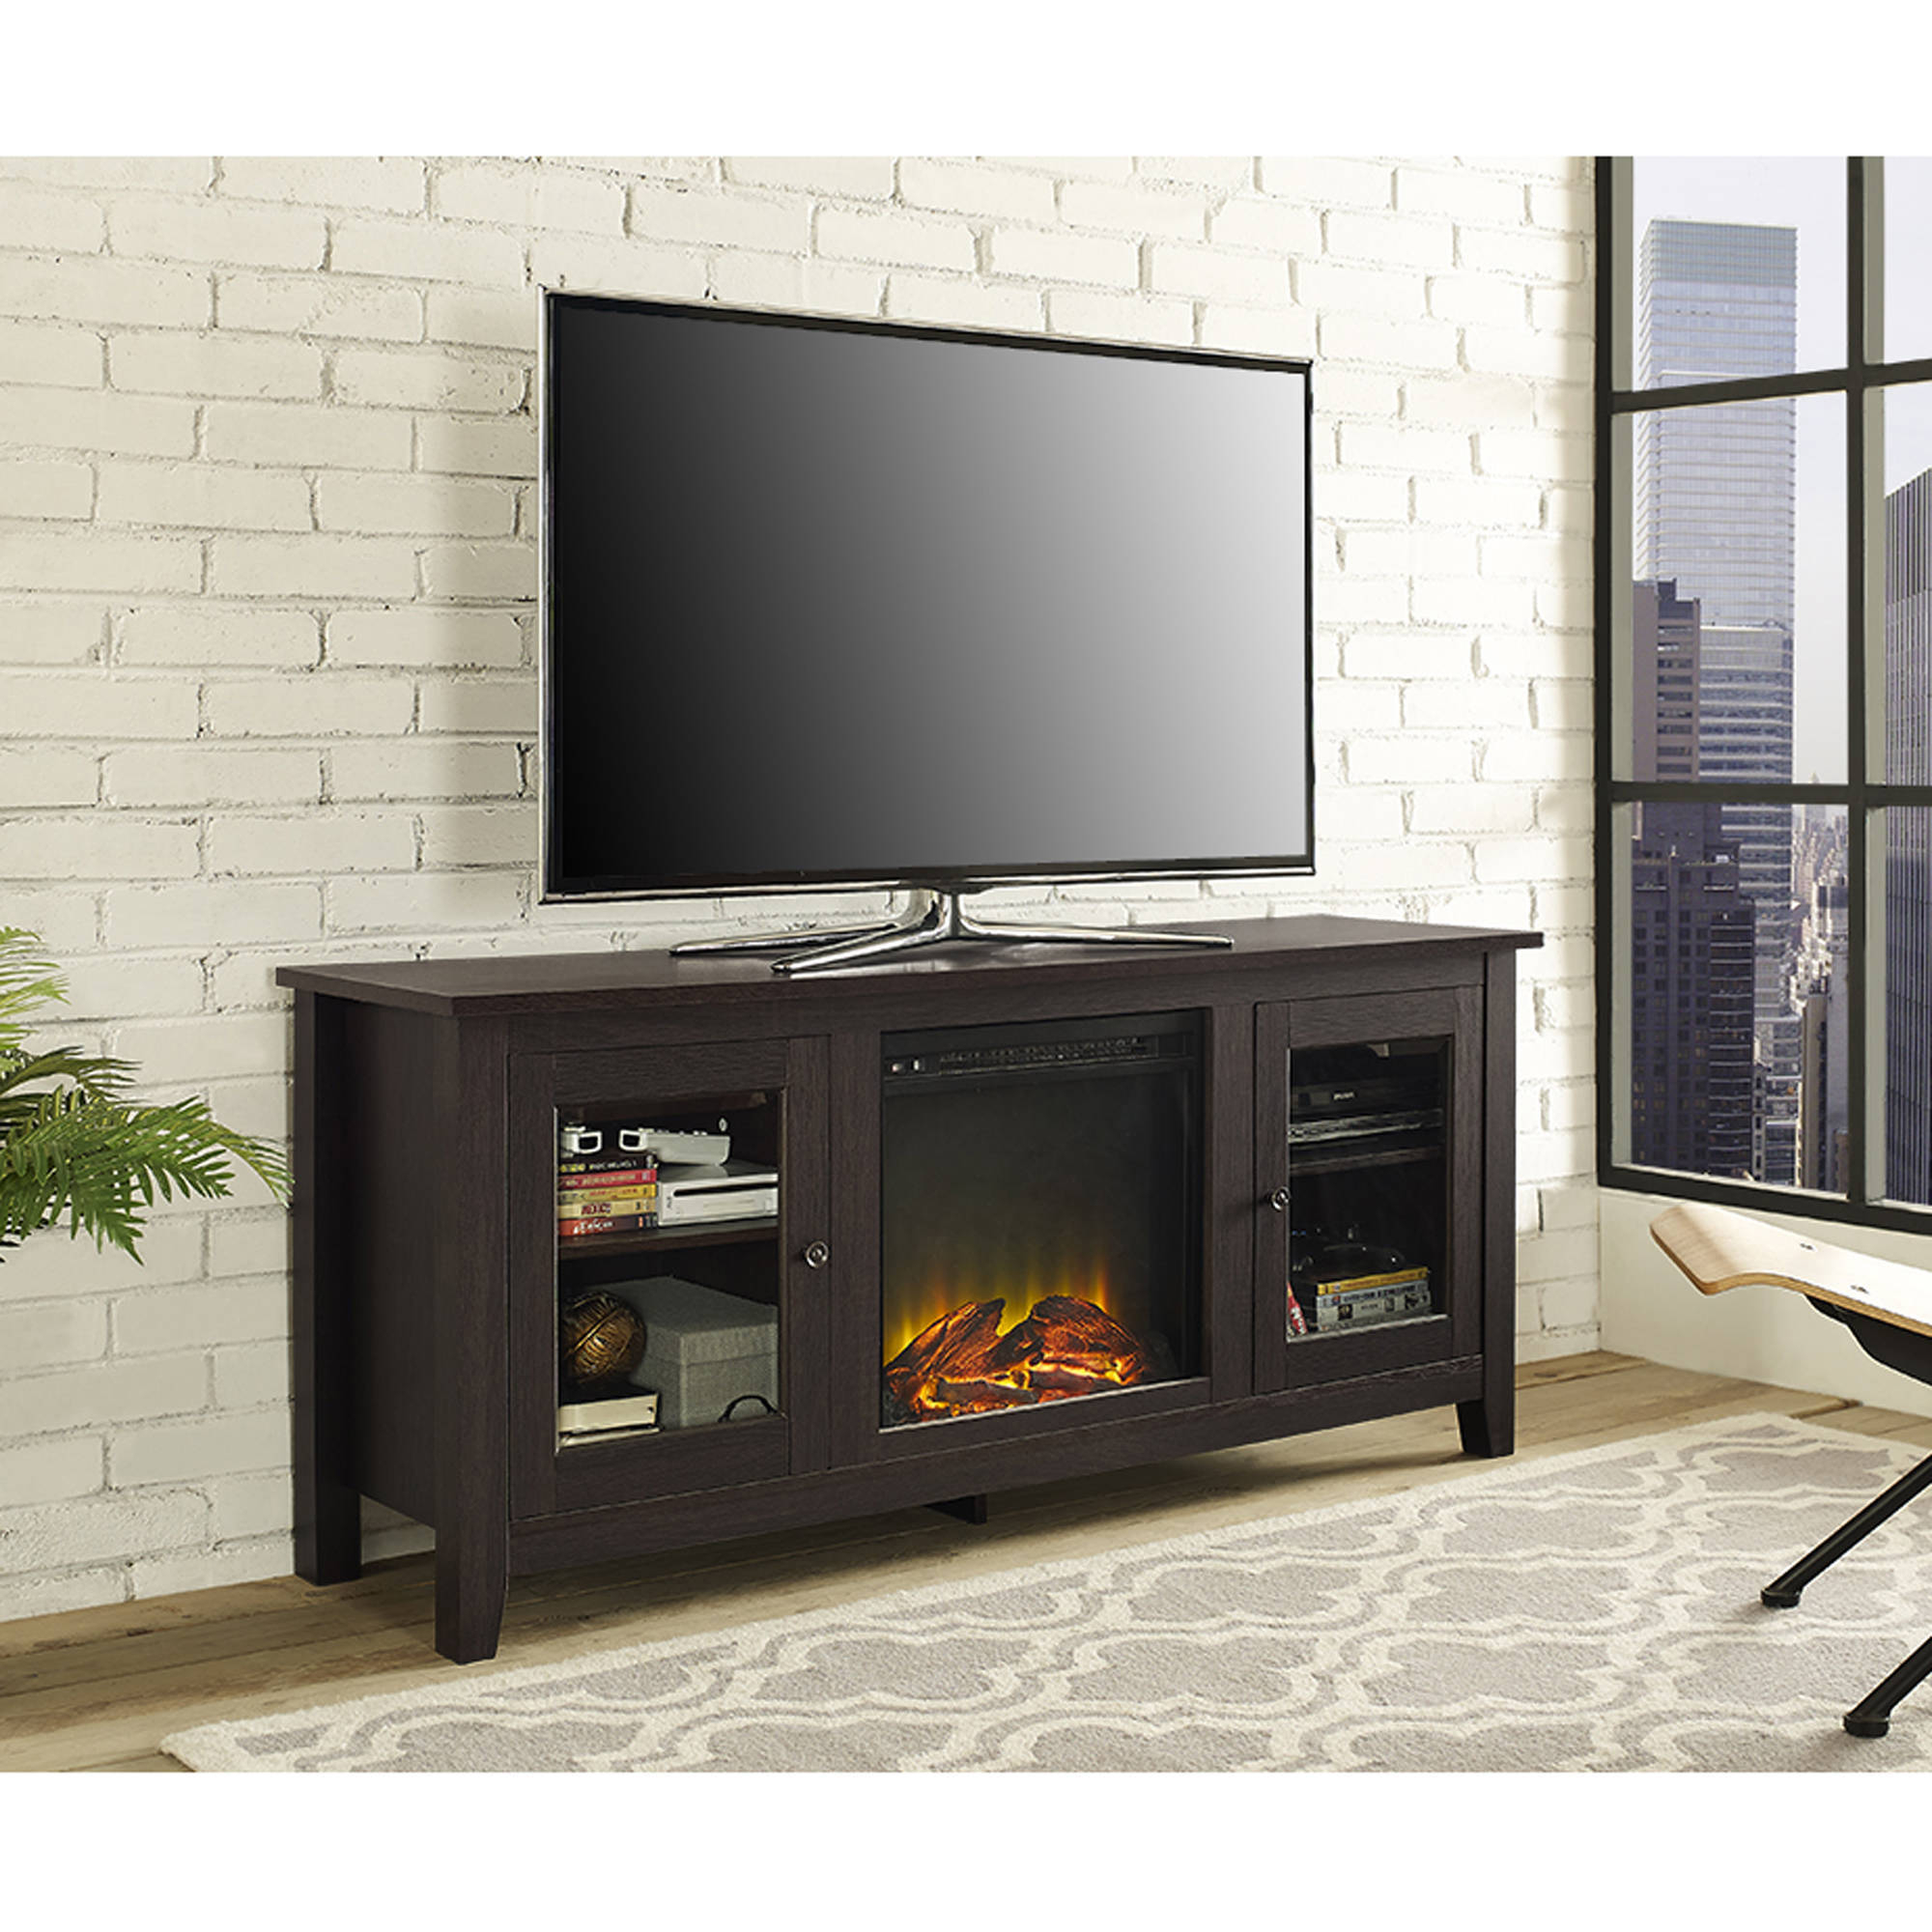 Tv Stands Over Cable Box Regarding Popular Tv Stands & Entertainment Centers – Walmart (View 12 of 20)